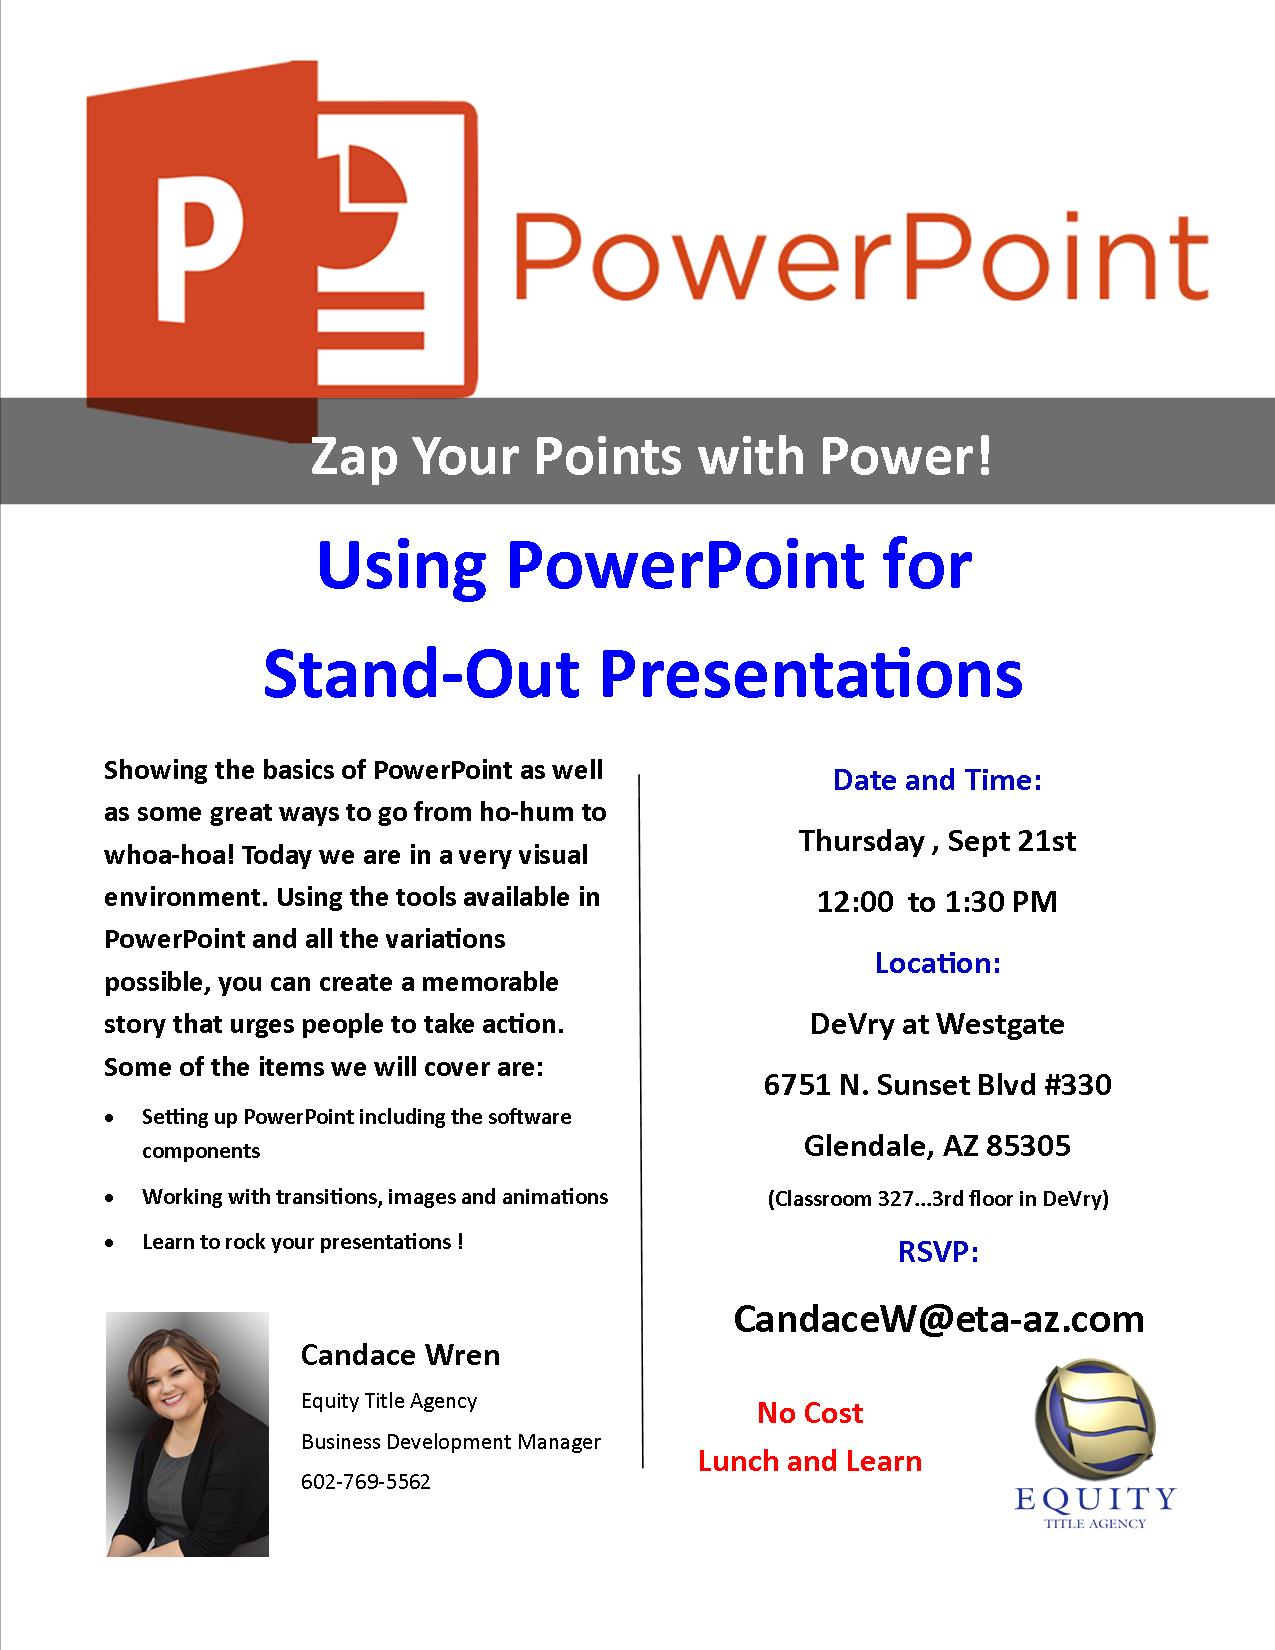 Powerpoint Presentations that Stand Out!